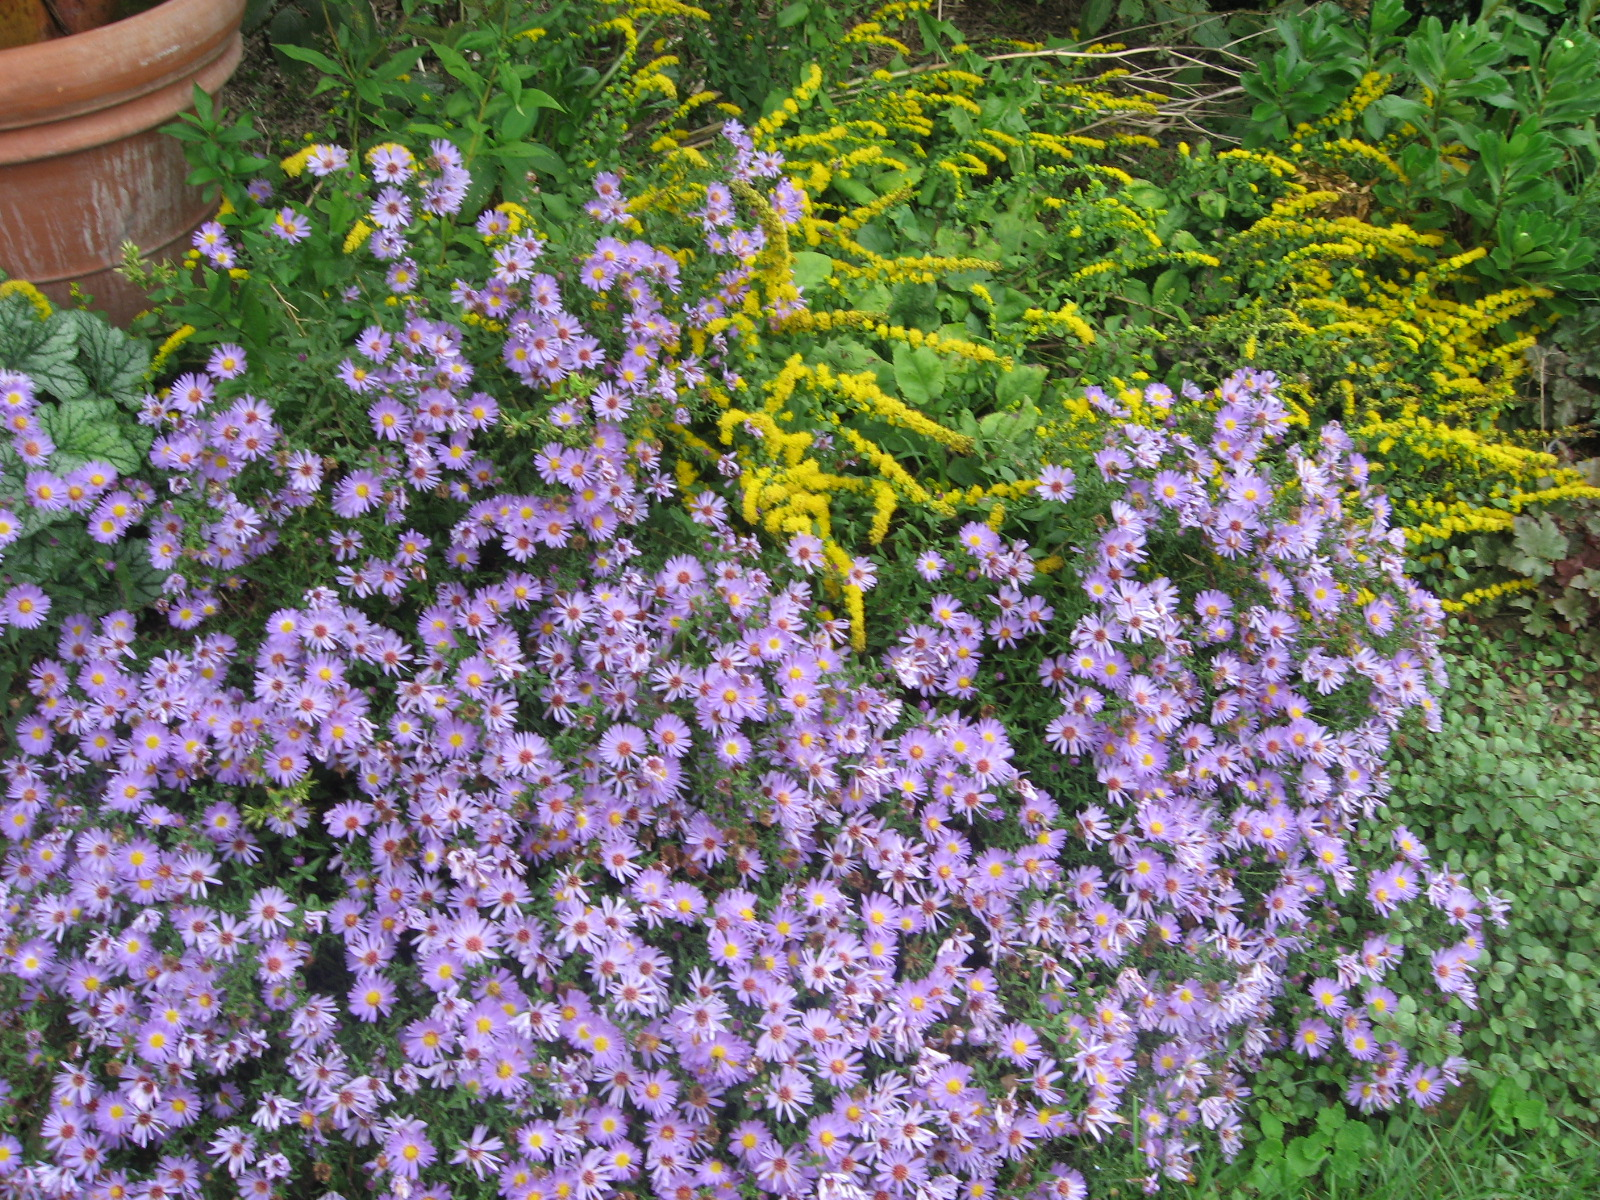 Blue New York Aster and Fireworks Goldenrod